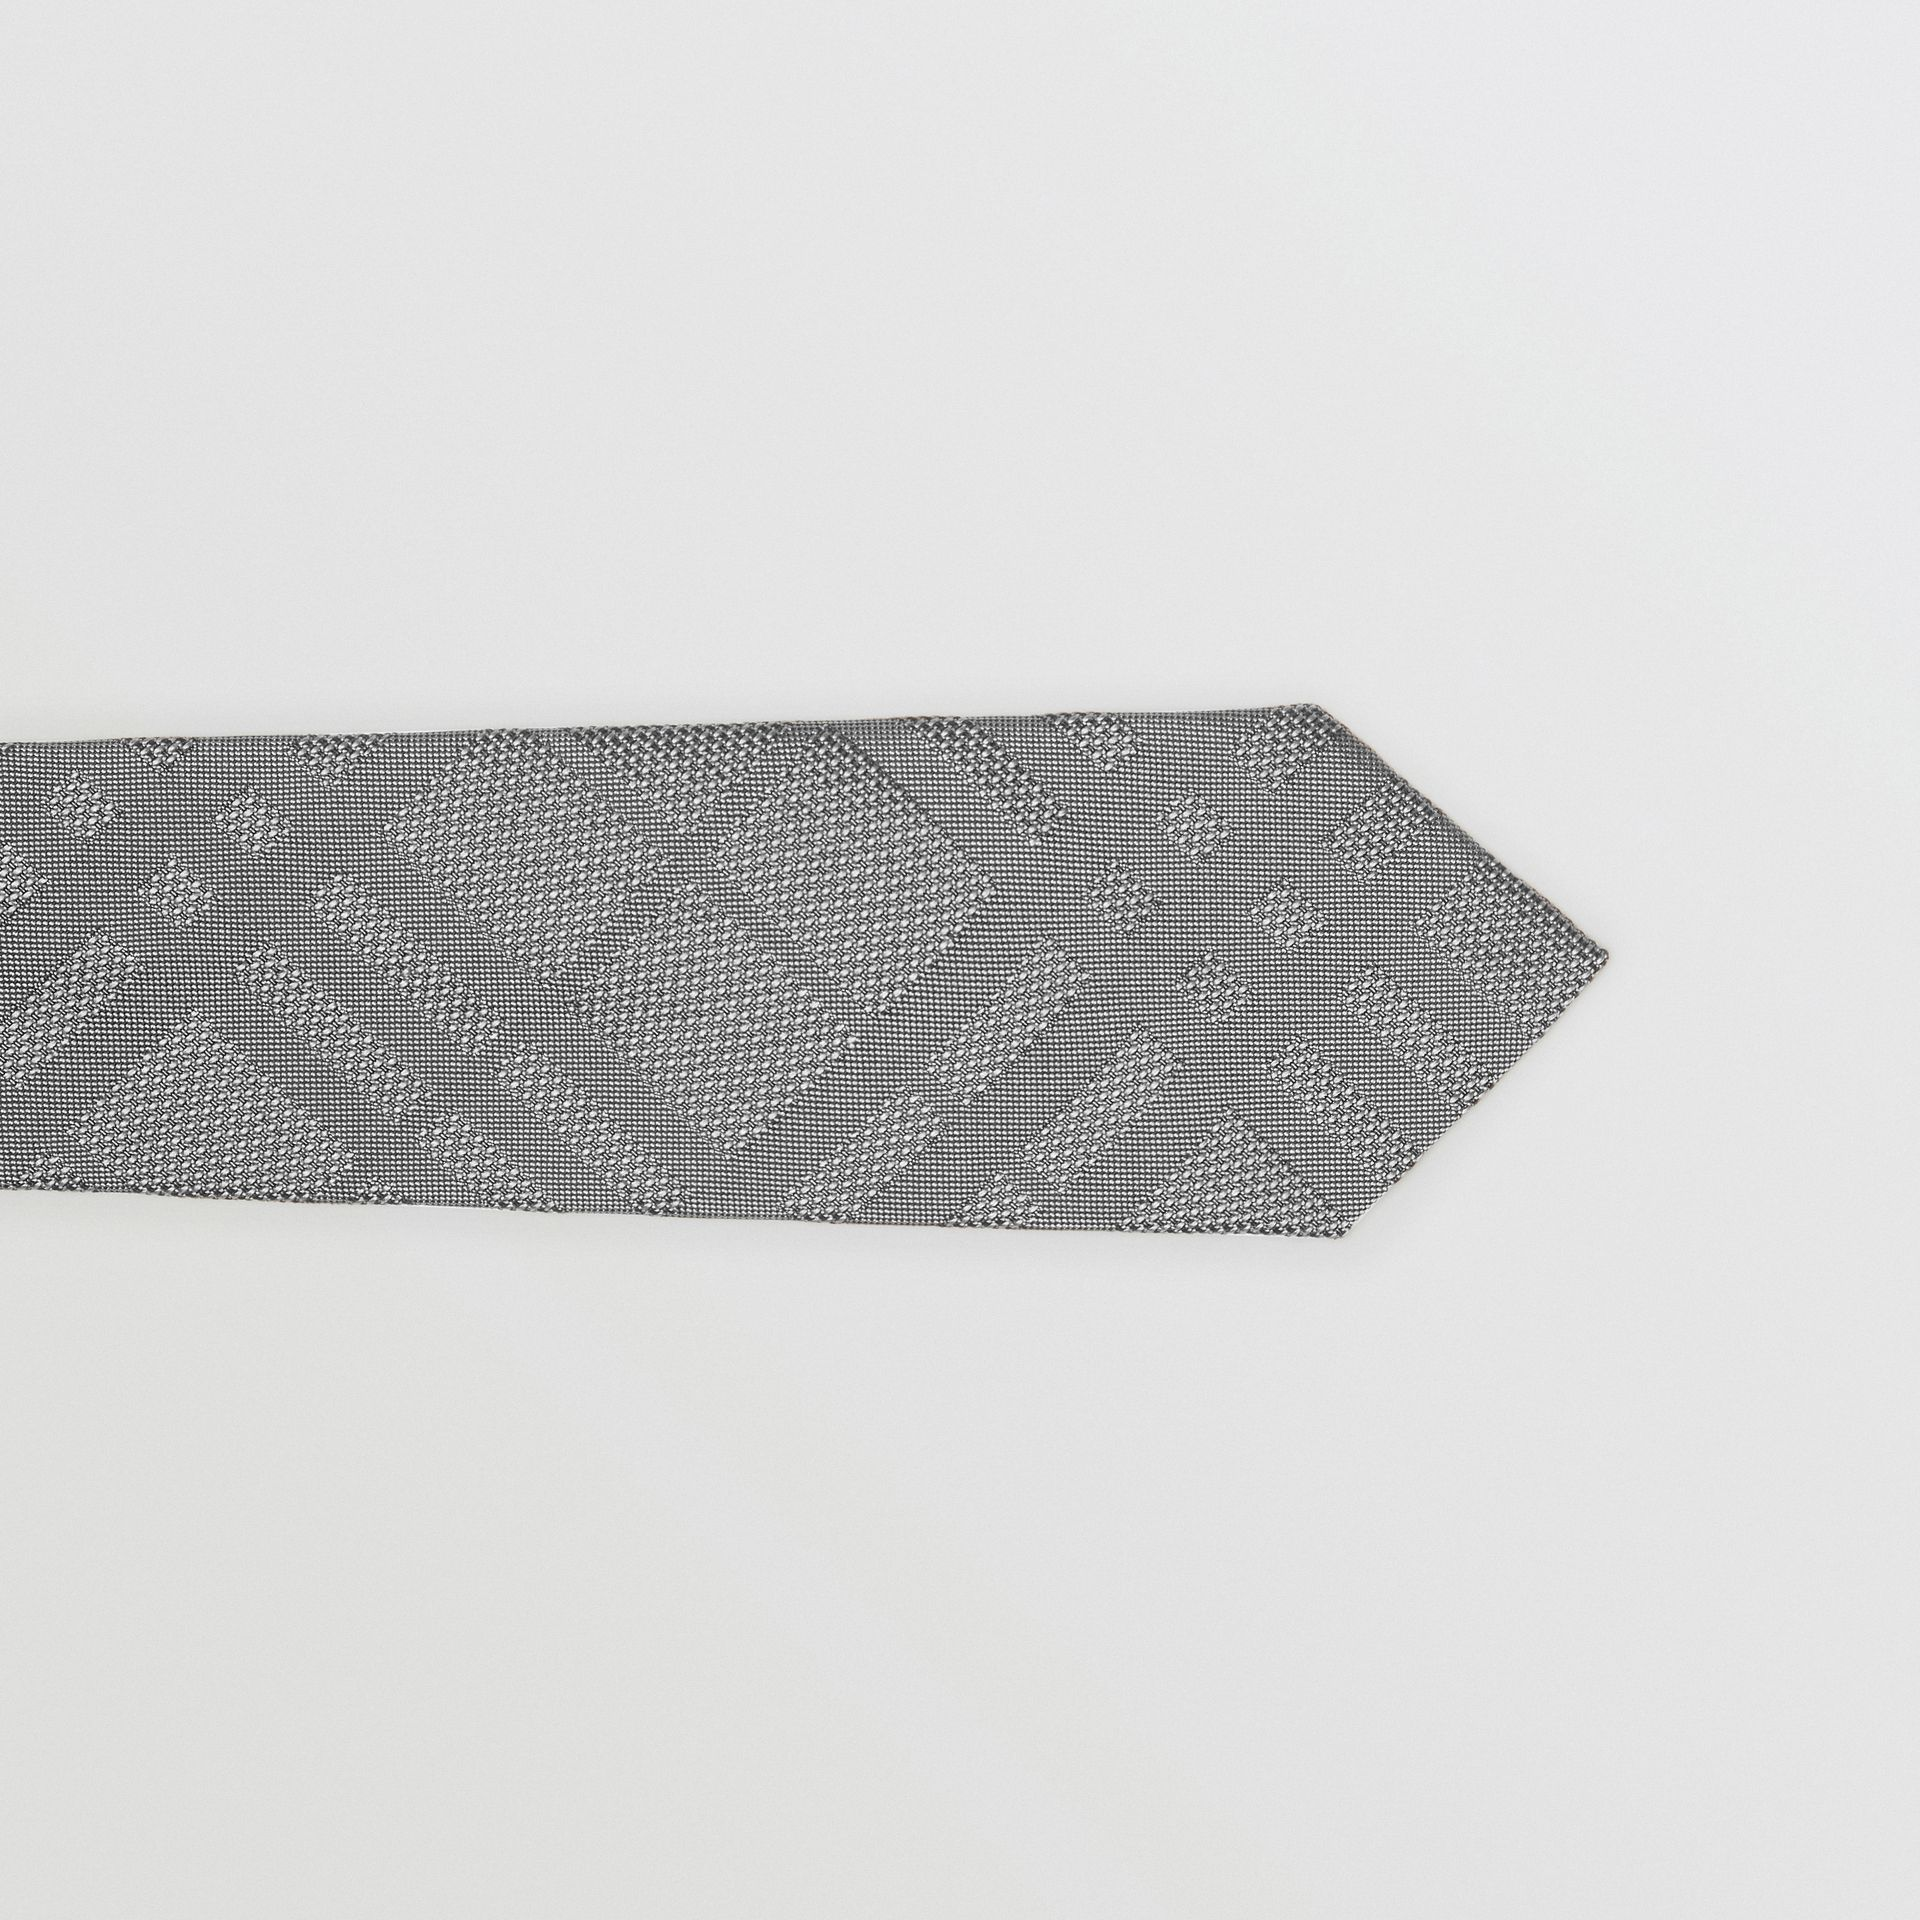 Classic Cut Check Silk Jacquard Tie in Charcoal - Men | Burberry Australia - gallery image 1